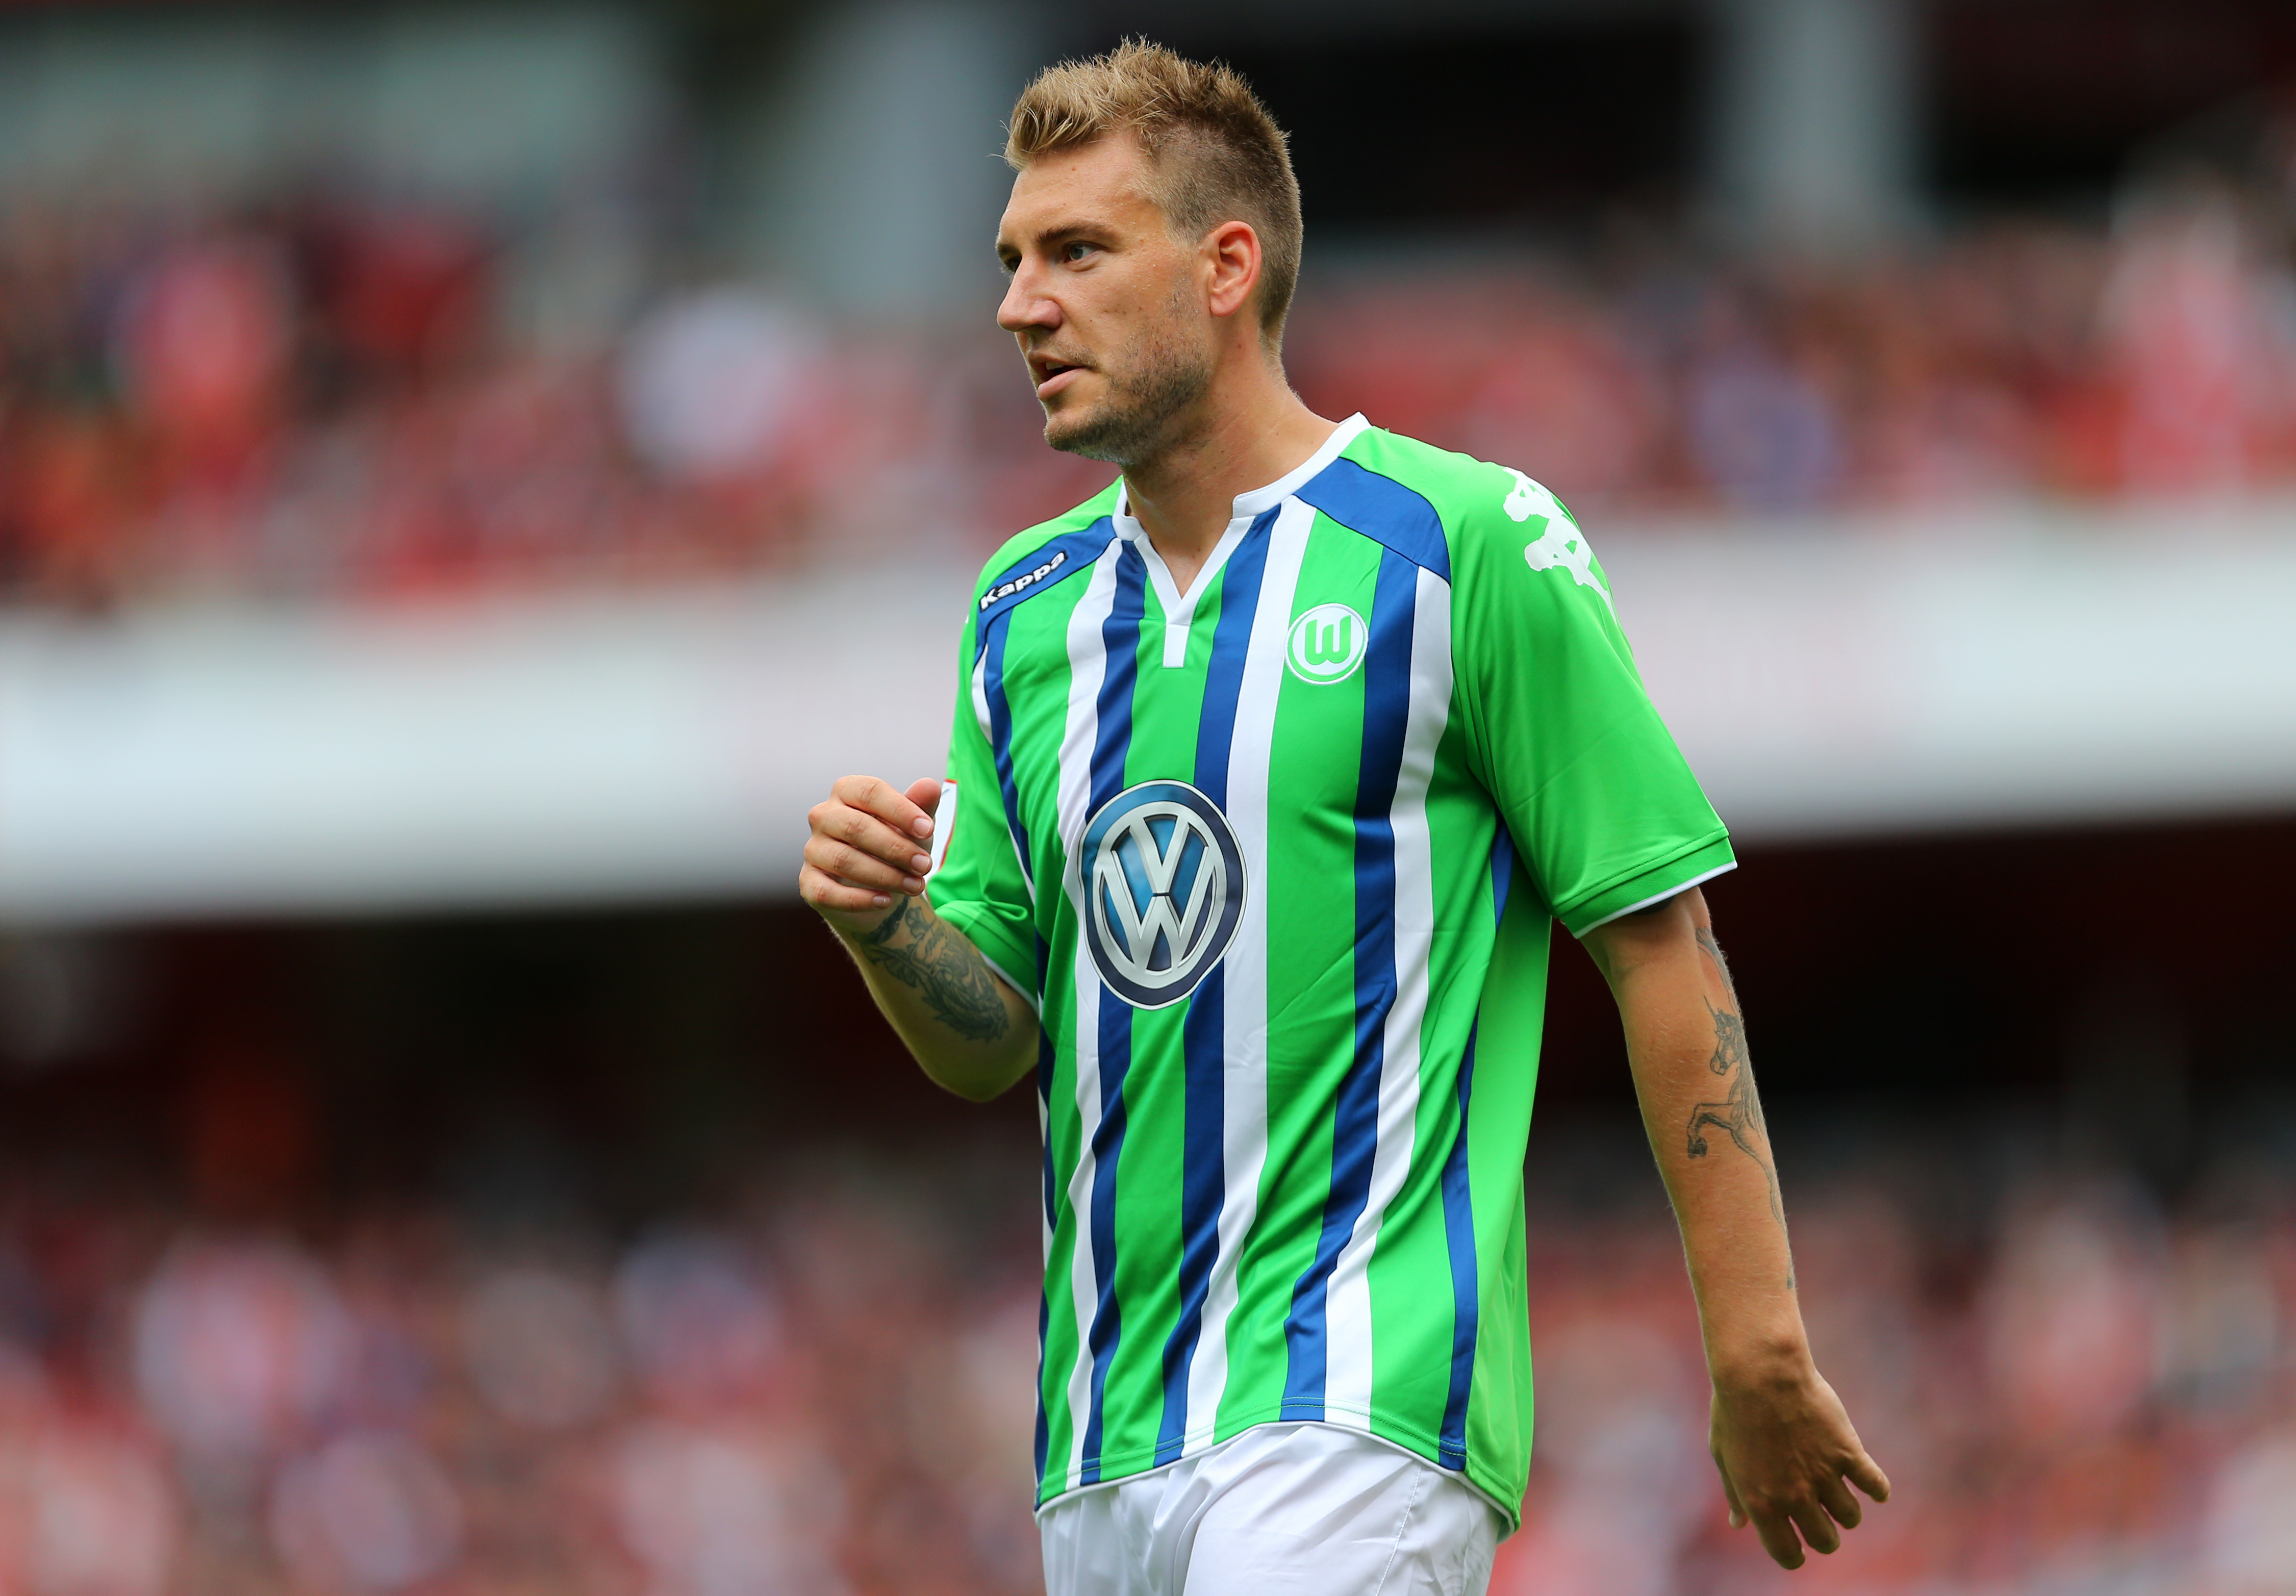 Nicklas Bendtner in line to face Arsenal after signing two-year Nottingham Forest deal